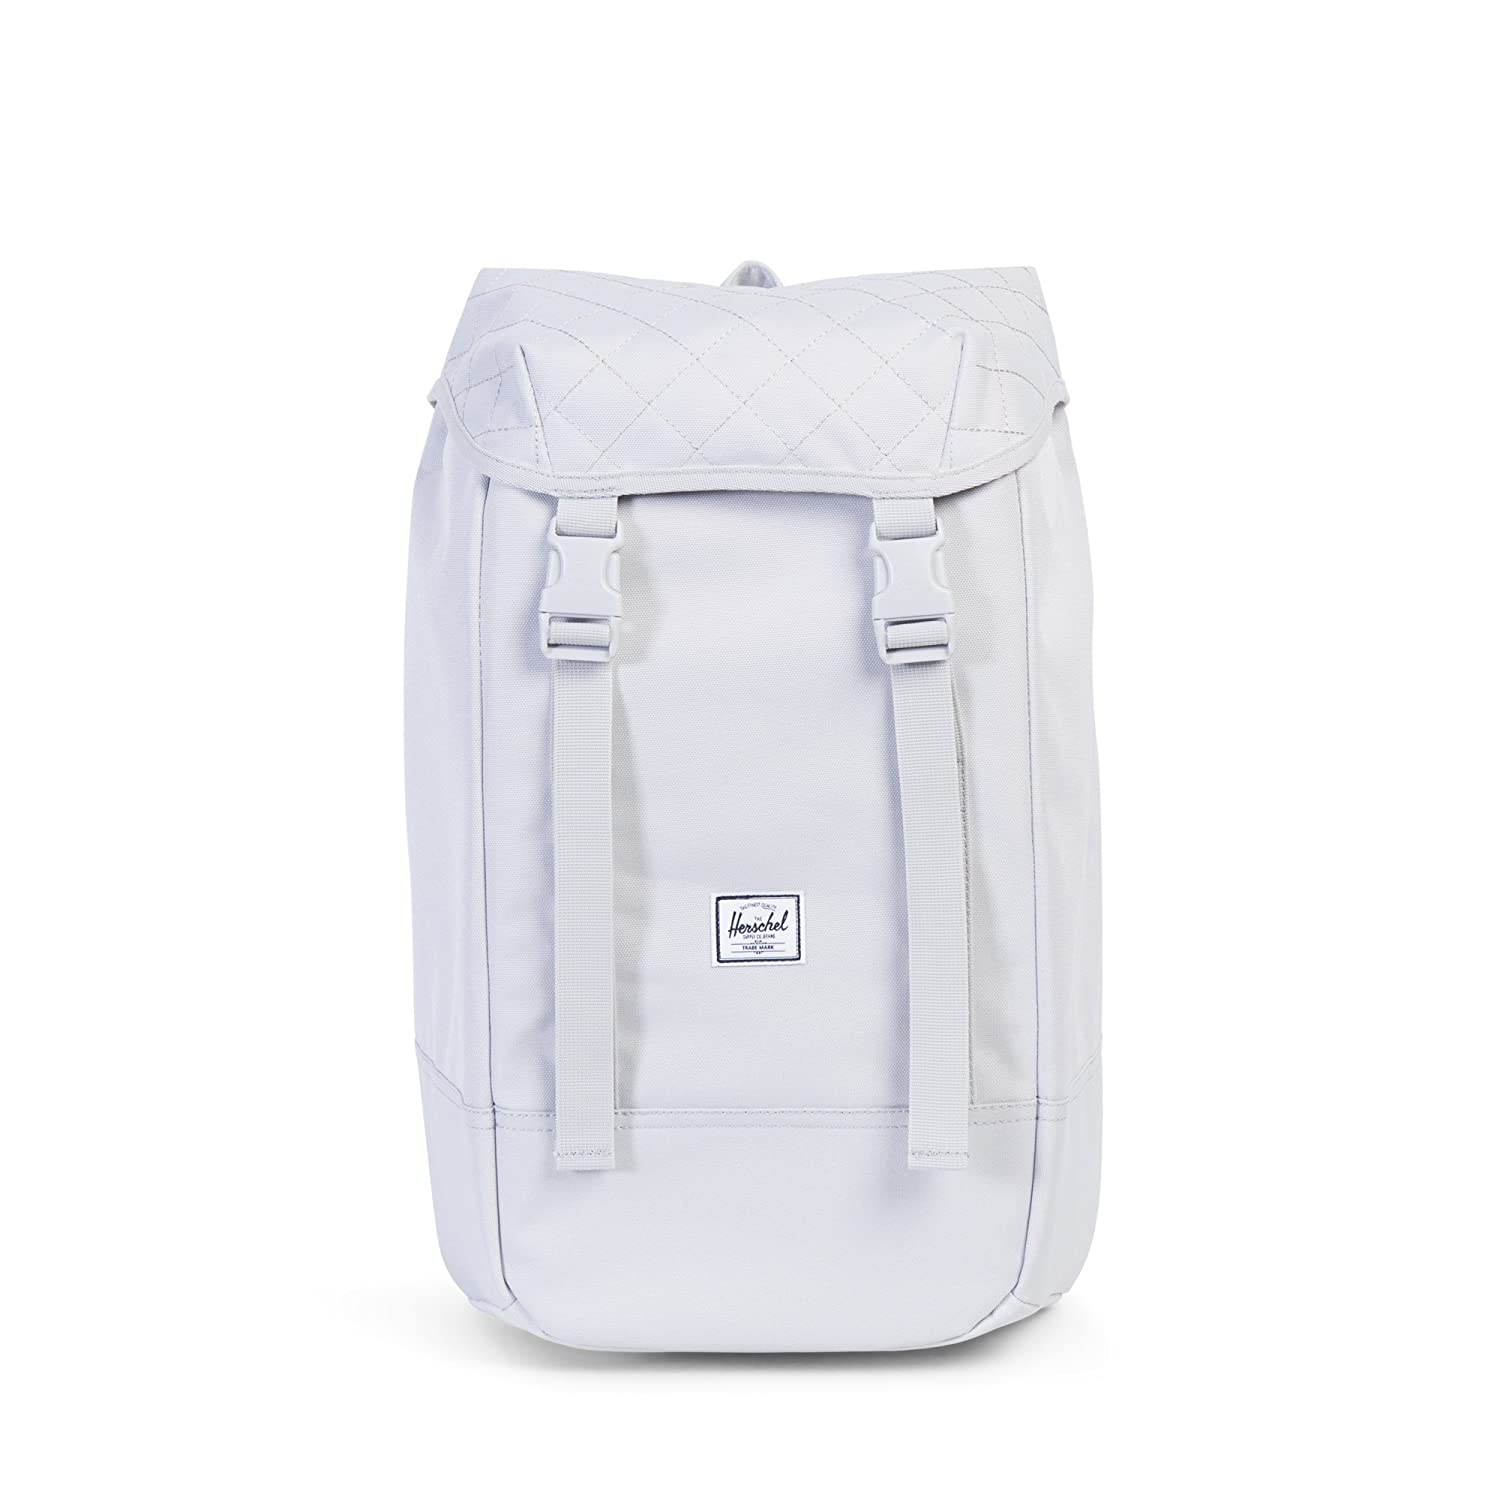 35346b6c87b Herschel Supply Co. Iona Backpack